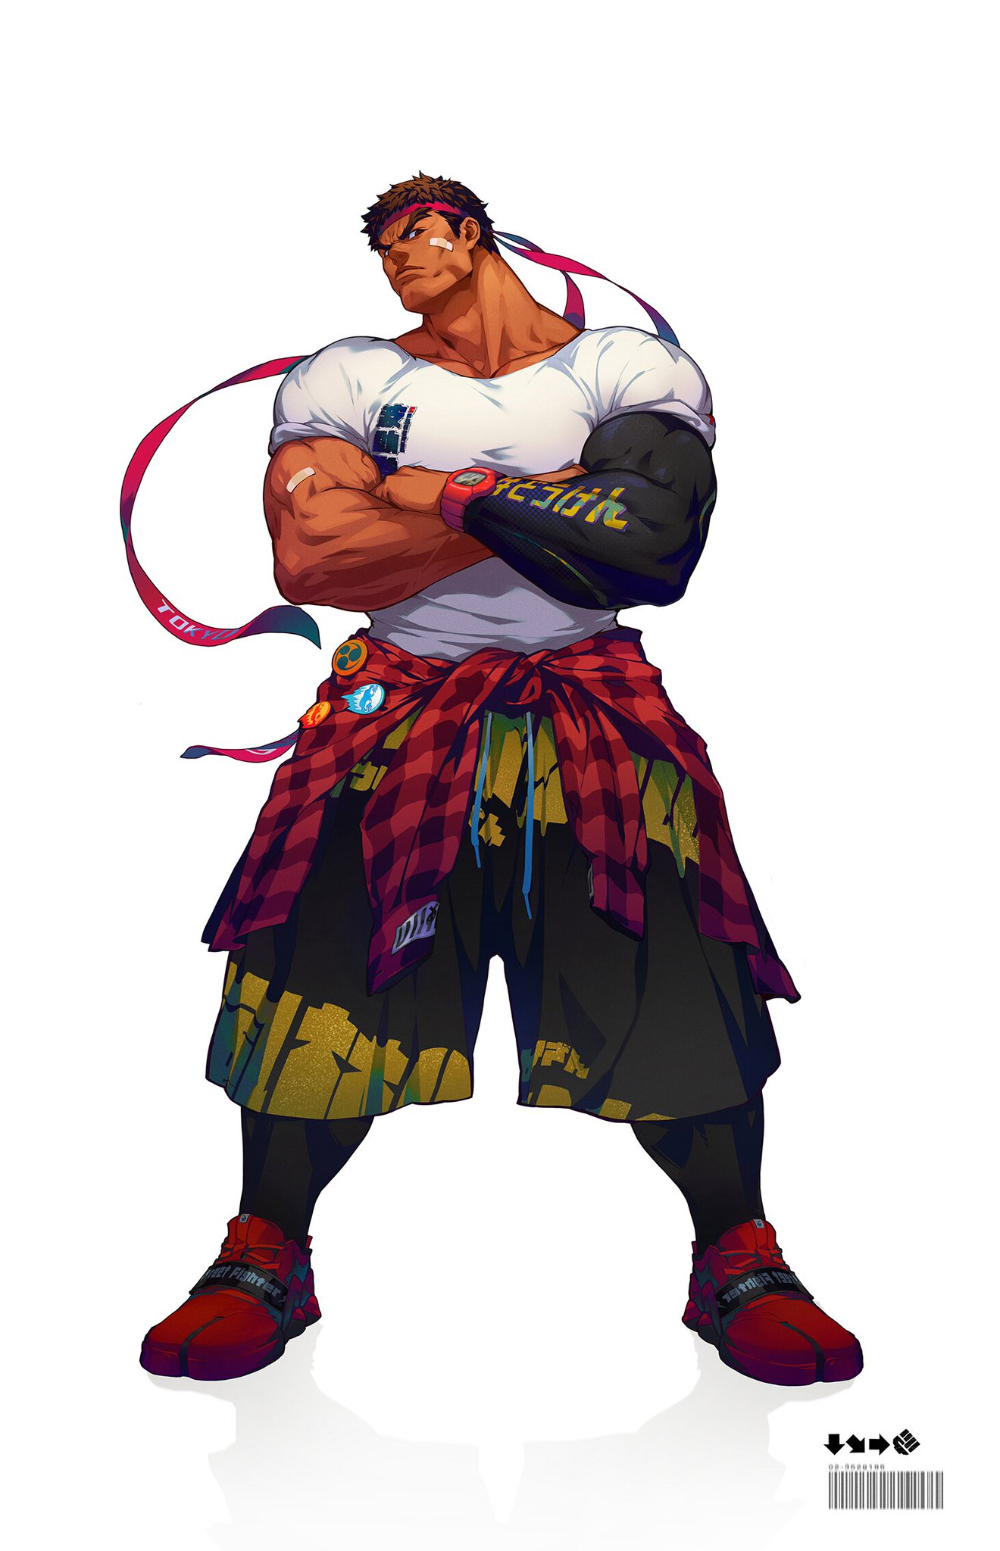 Street Fighter Duel High Res Character Art Tfg Fighting Game News In 2021 Street Fighter Art Street Fighter Characters Ryu Street Fighter